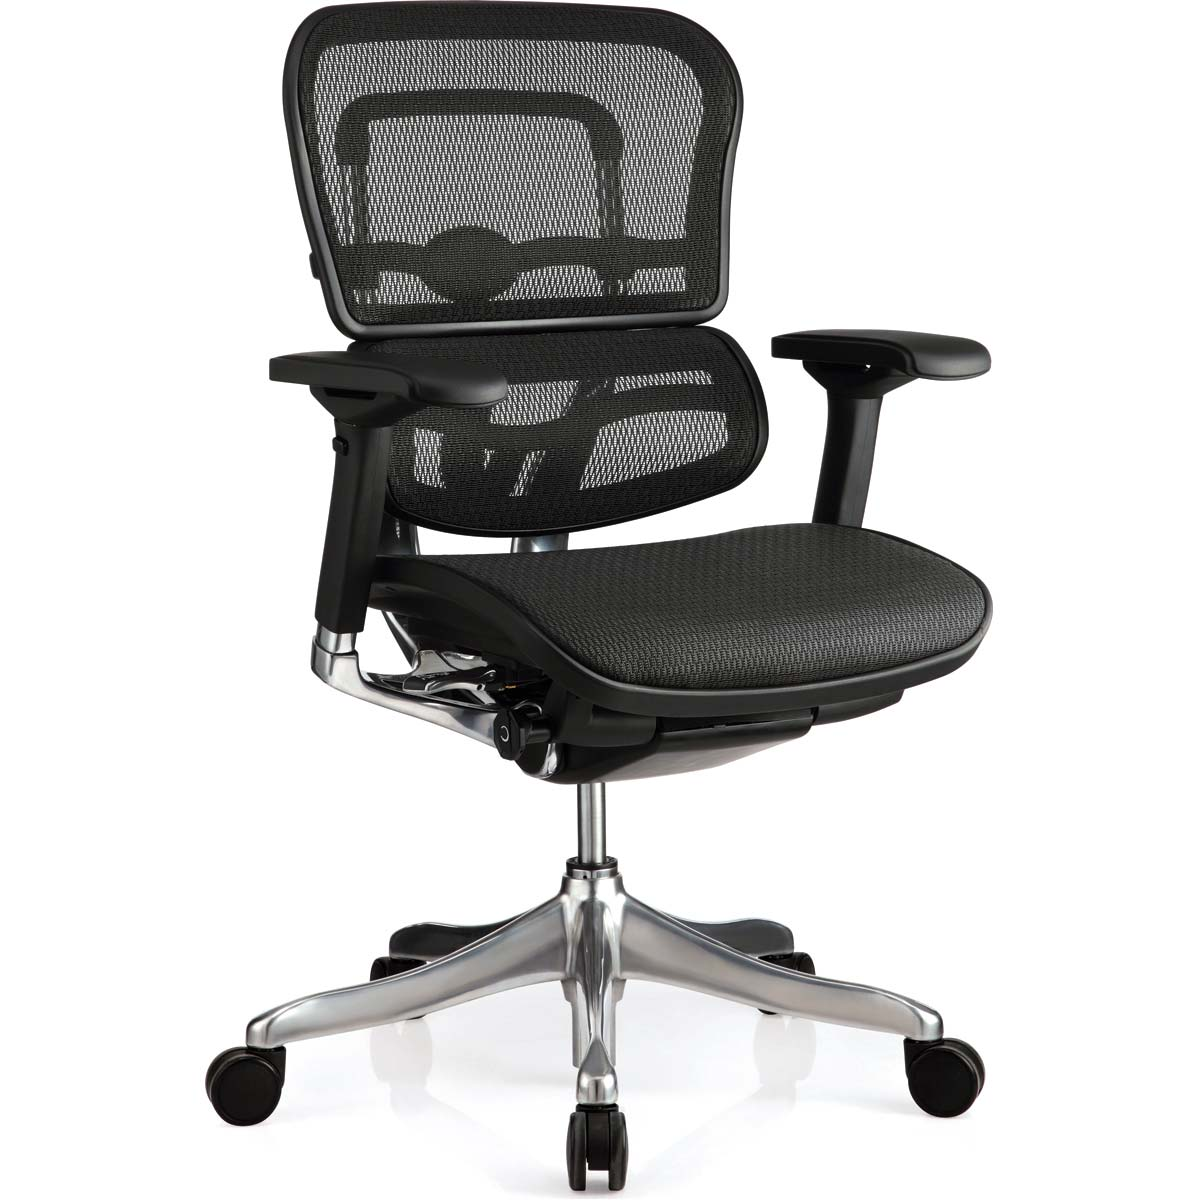 ergo chairs for office chair cover hire christchurch raynor elite me5ergltlow shop